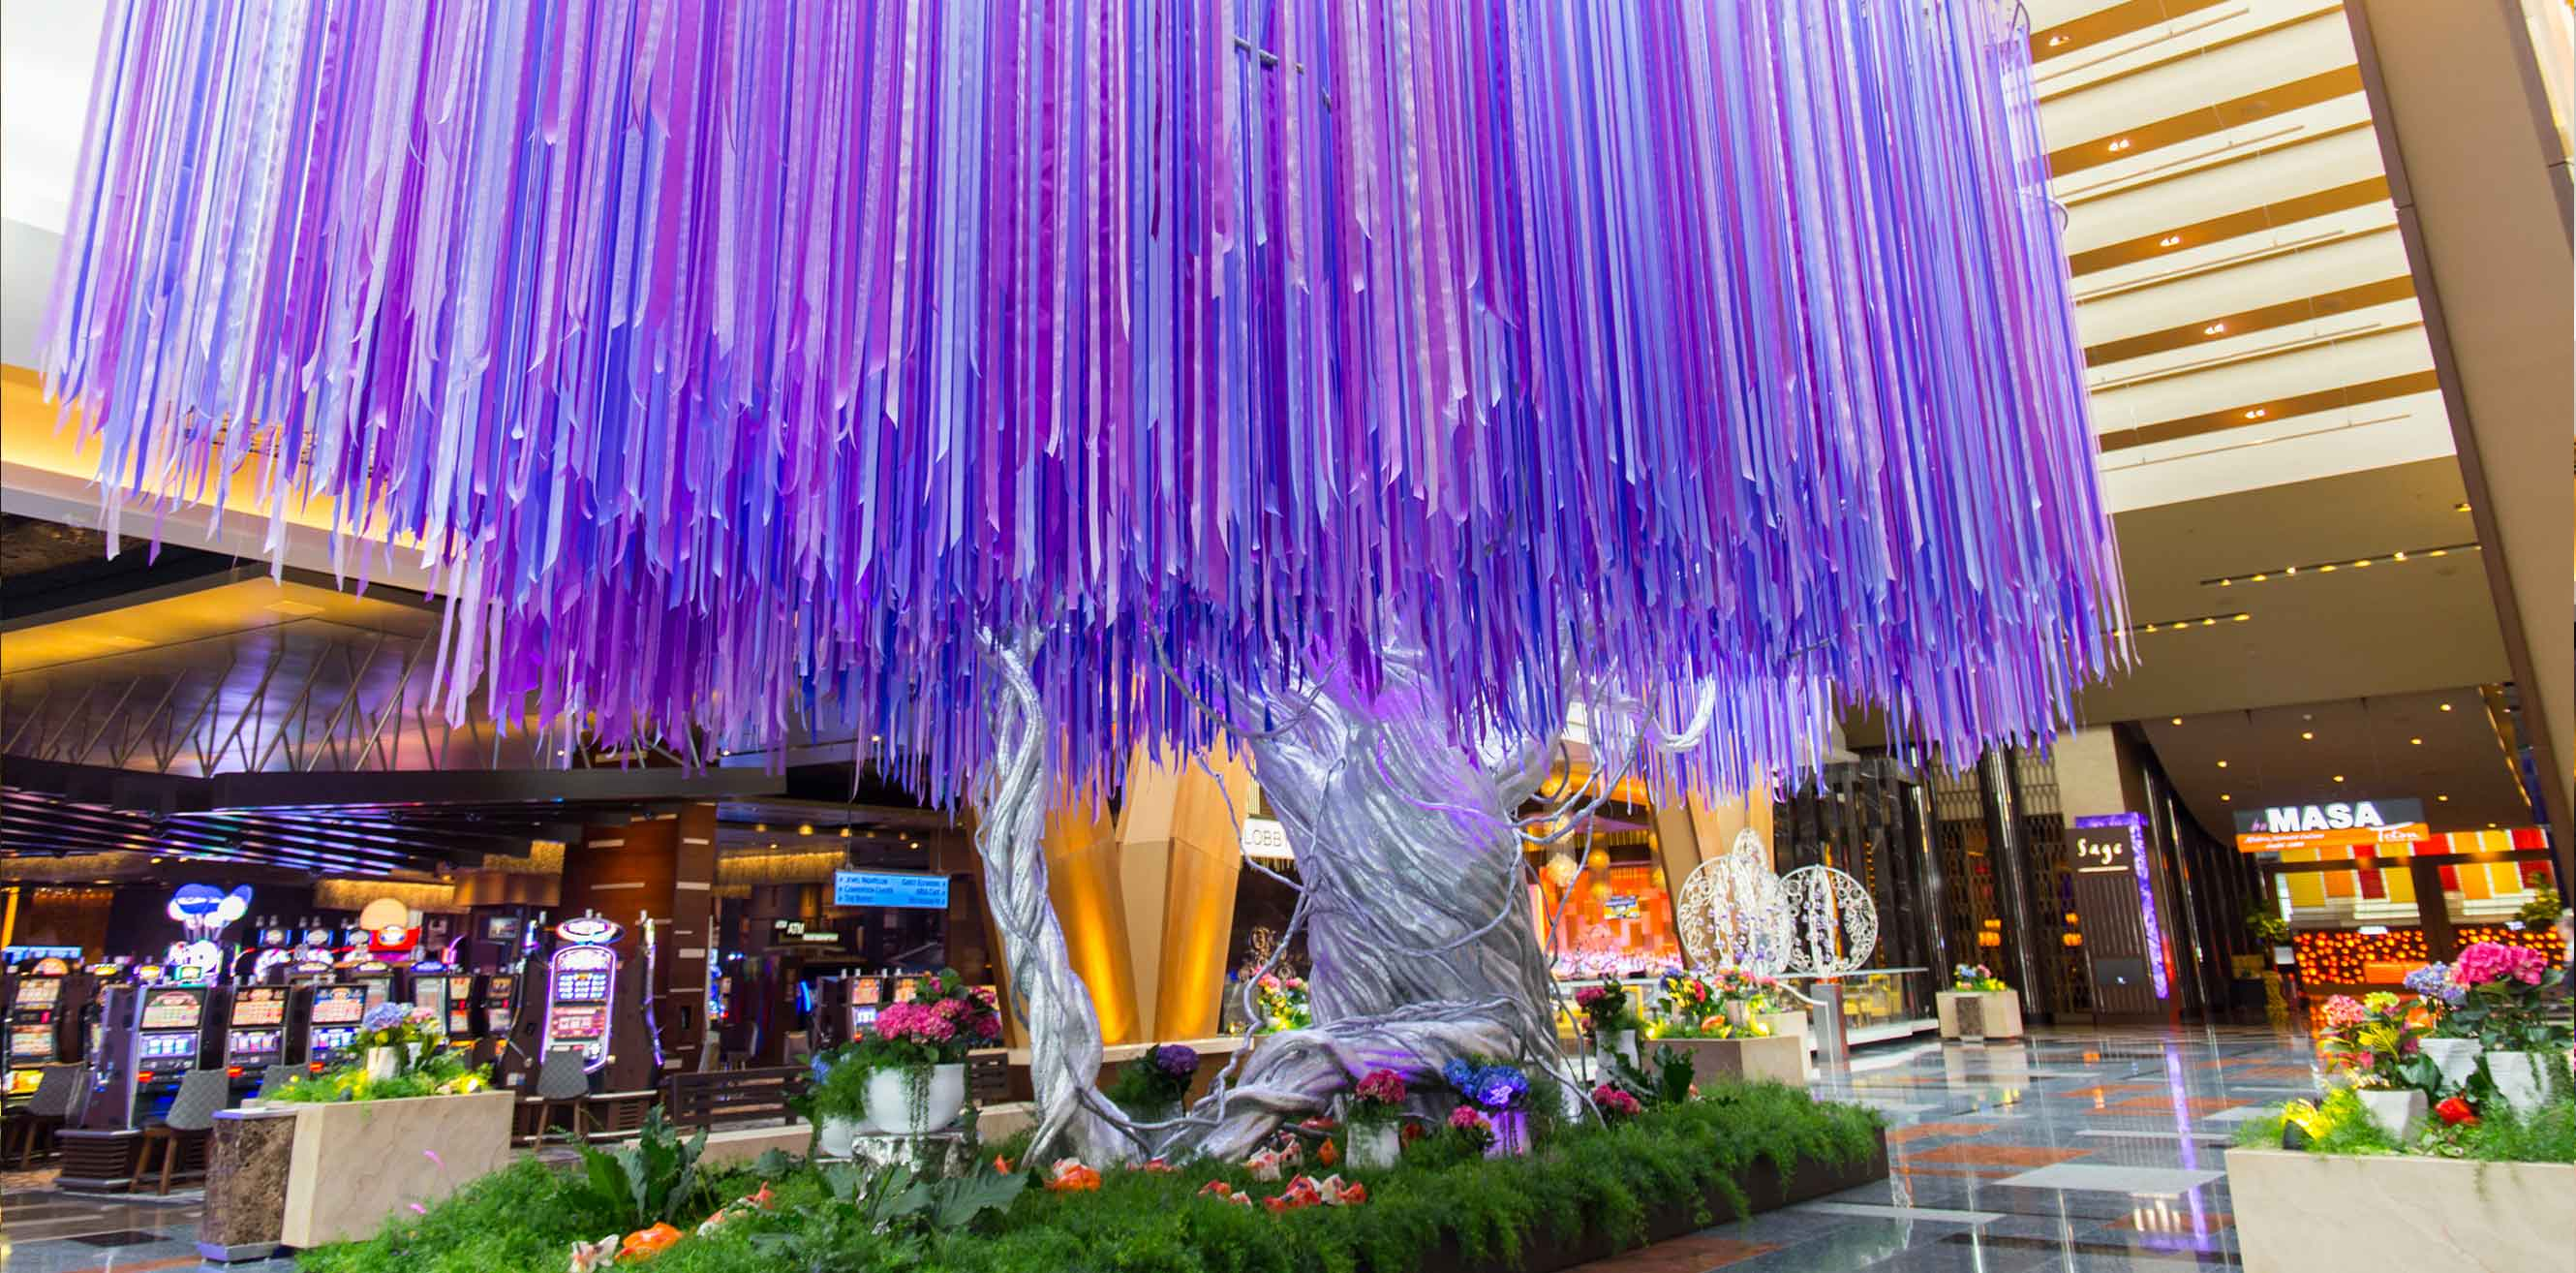 Tree installation with purple